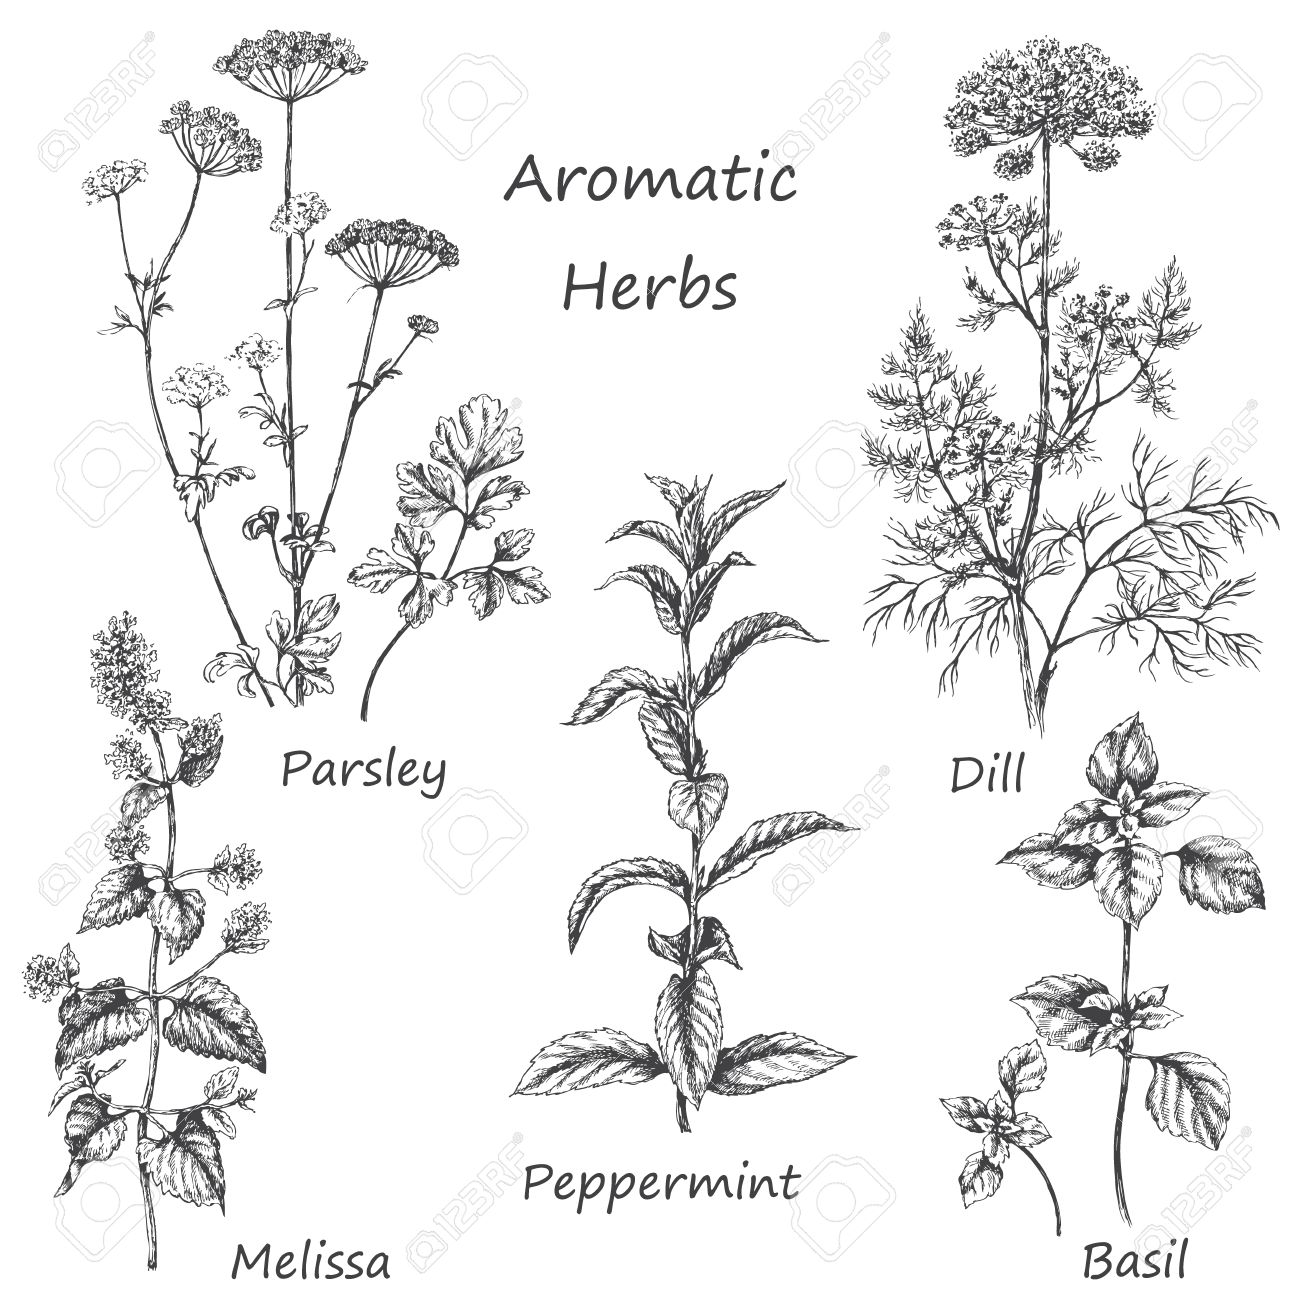 Hand drawn floral elements. Aromatic herbs set. Sketch of medicinal fragrant plants and spices. Monochrome image of dill, mint, parsley, basil, melissa, peppermint. - 60230829